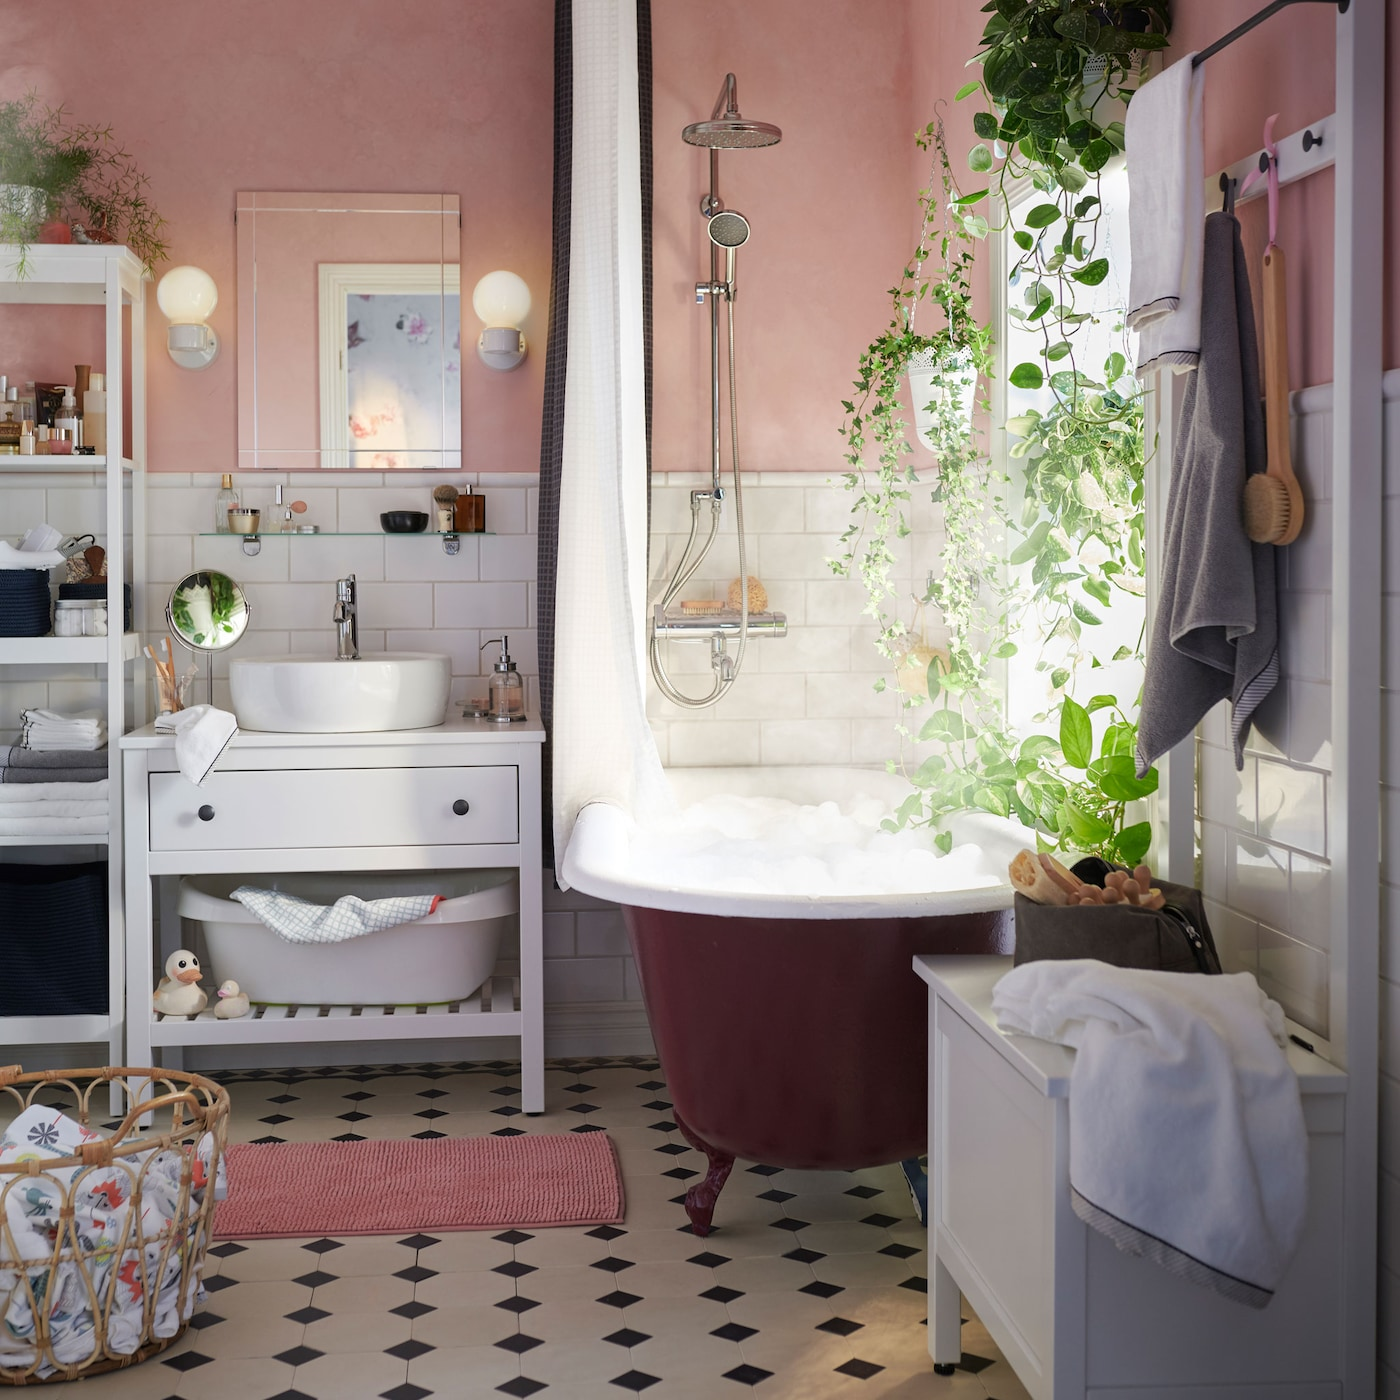 IKEA HEMNES white open washstand has a freestanding shelf below to quickly grab towels and toiletries. It can even fit a baby bathtub underneath as well!